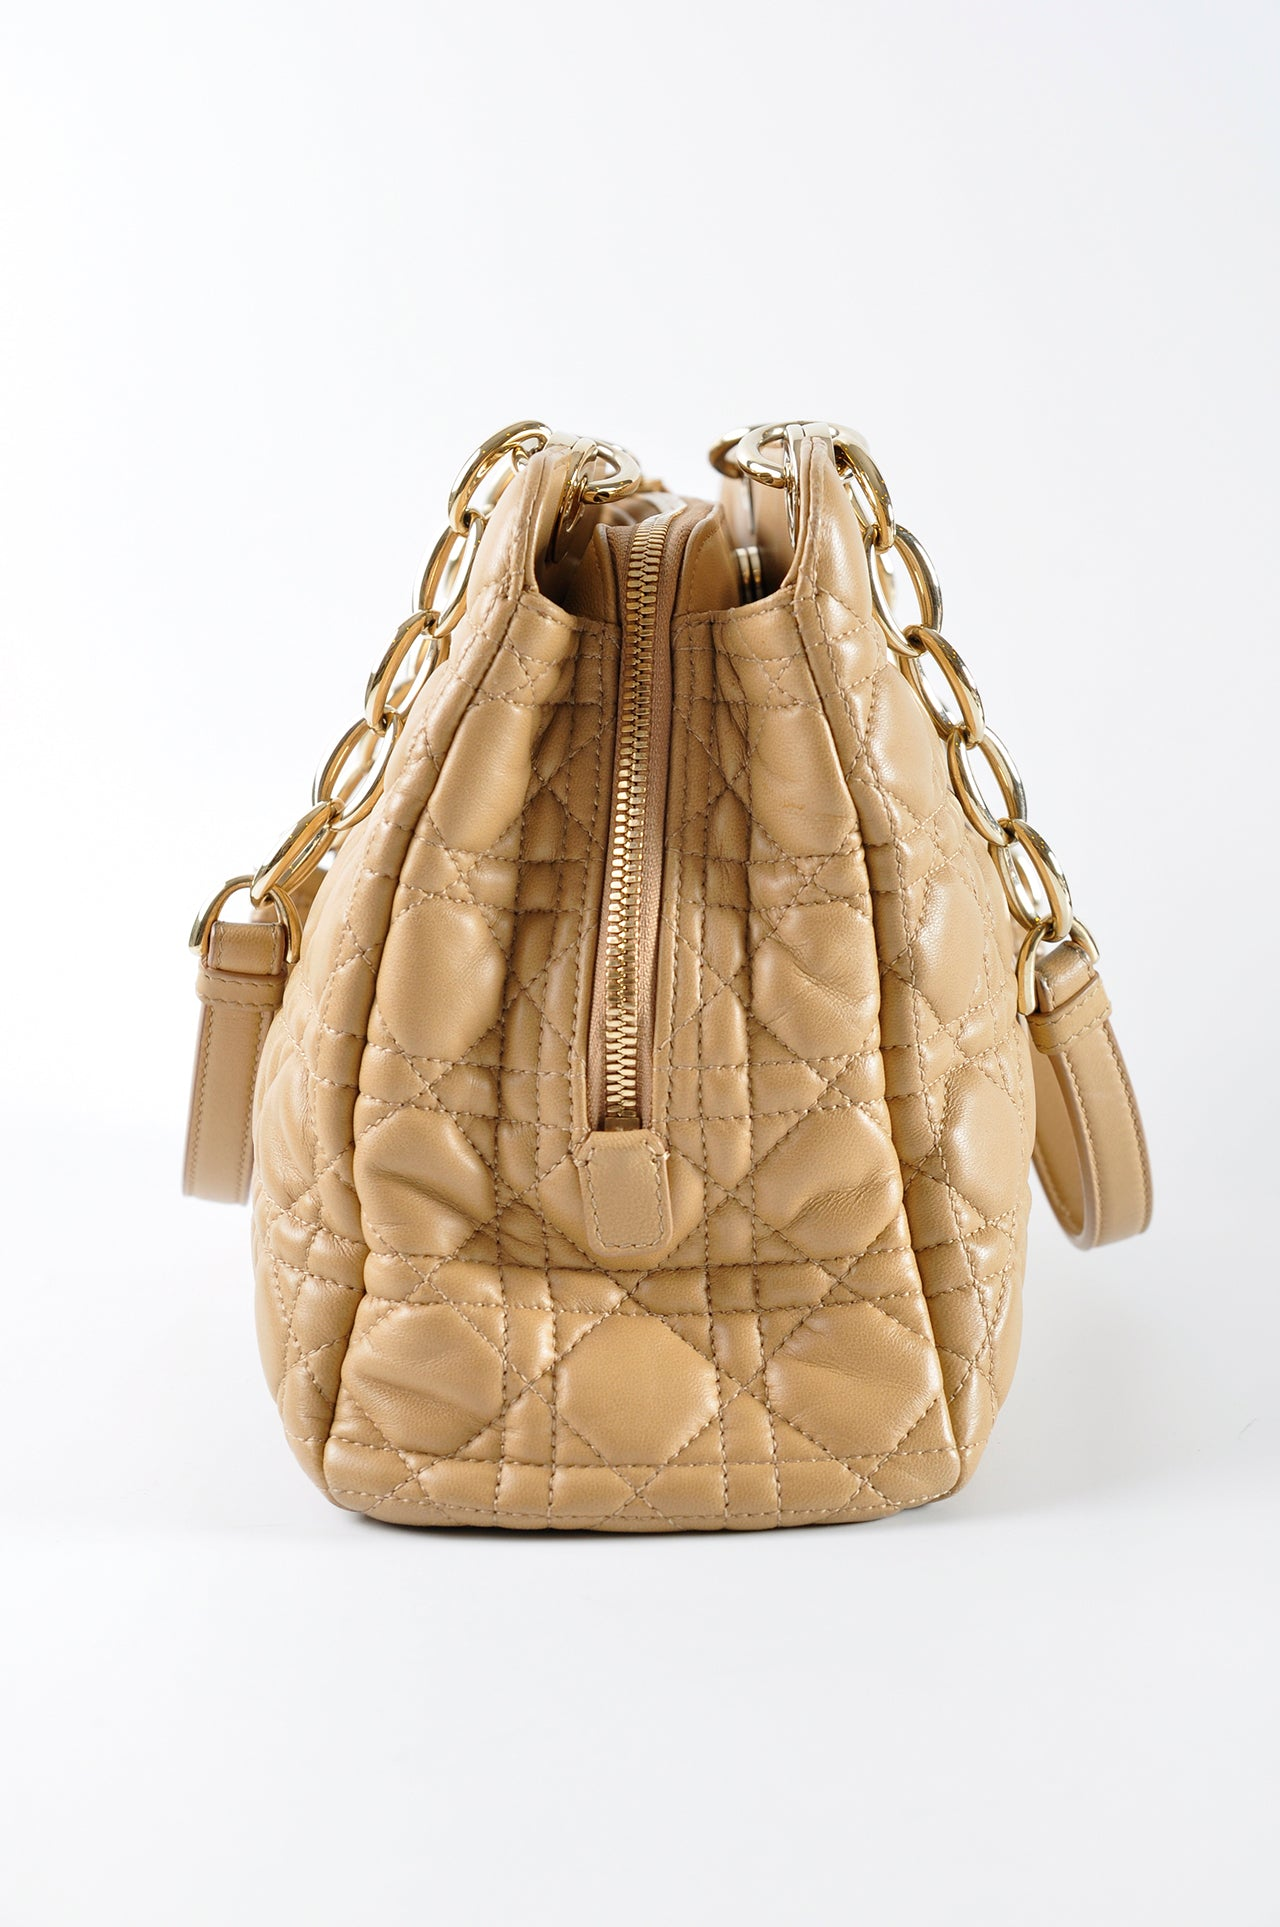 Christian Dior Small Beige Cannage Lambskin Shopping Tote Bag - Glampot